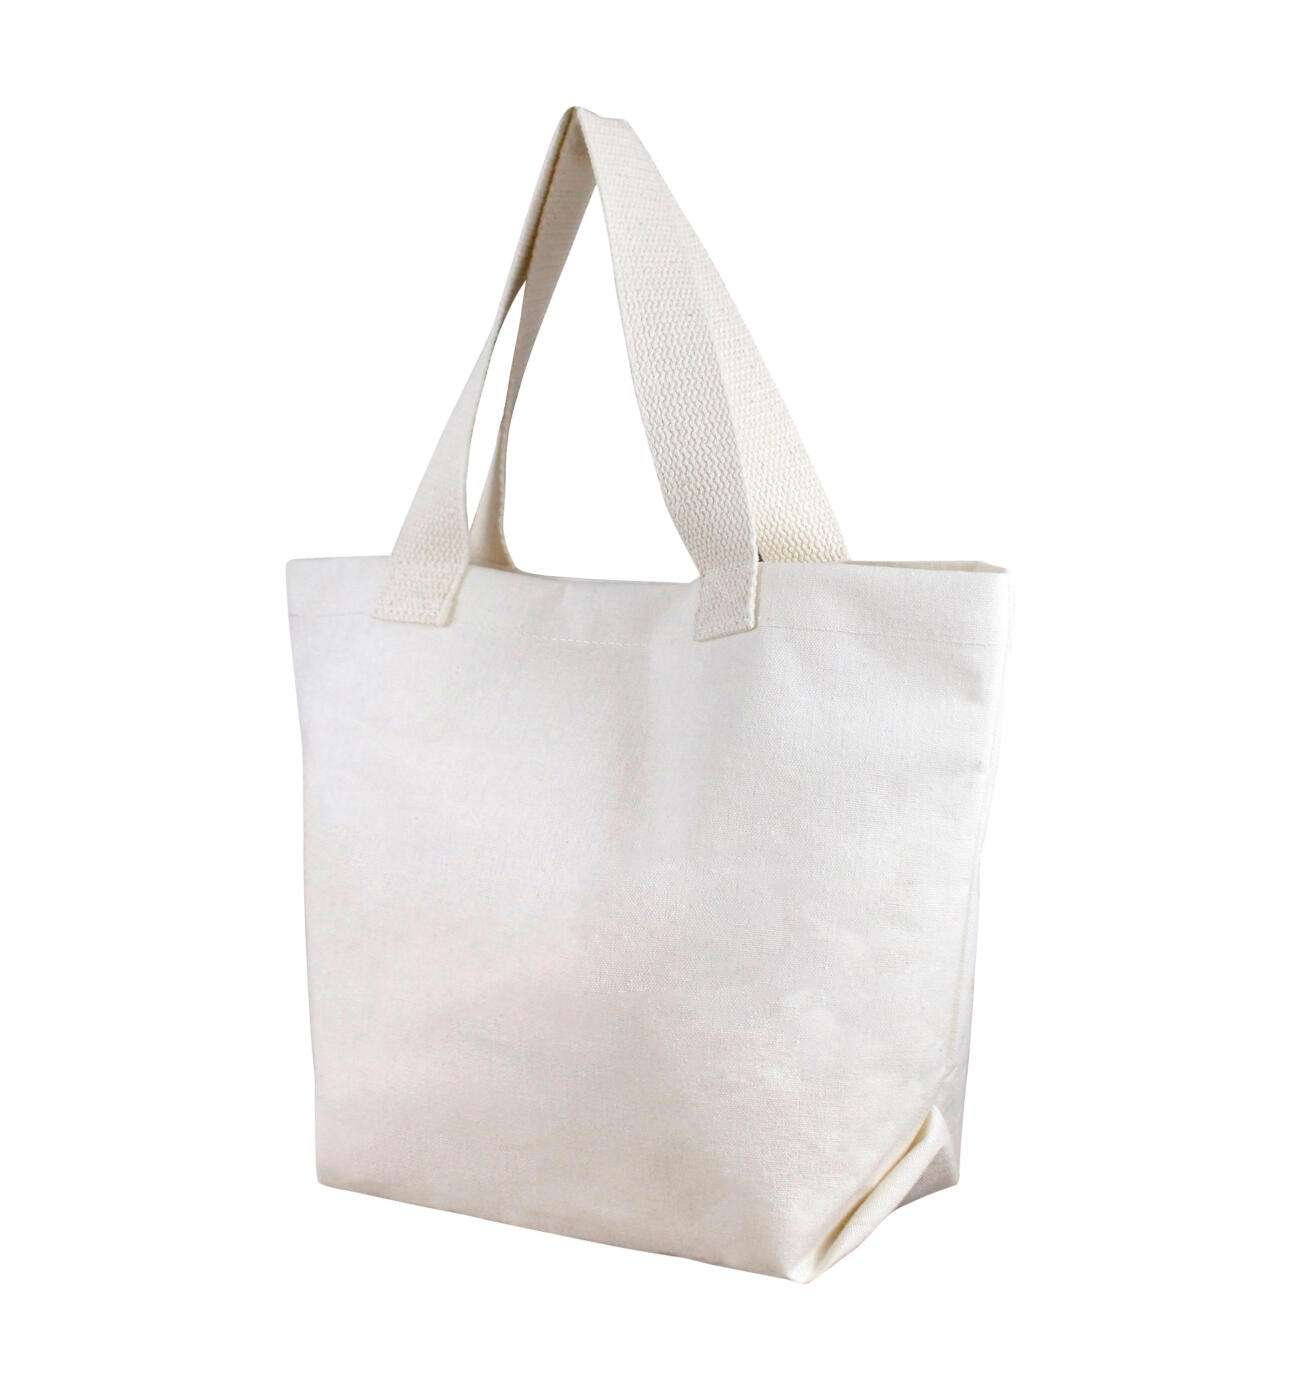 pmg_tote_gusset_25